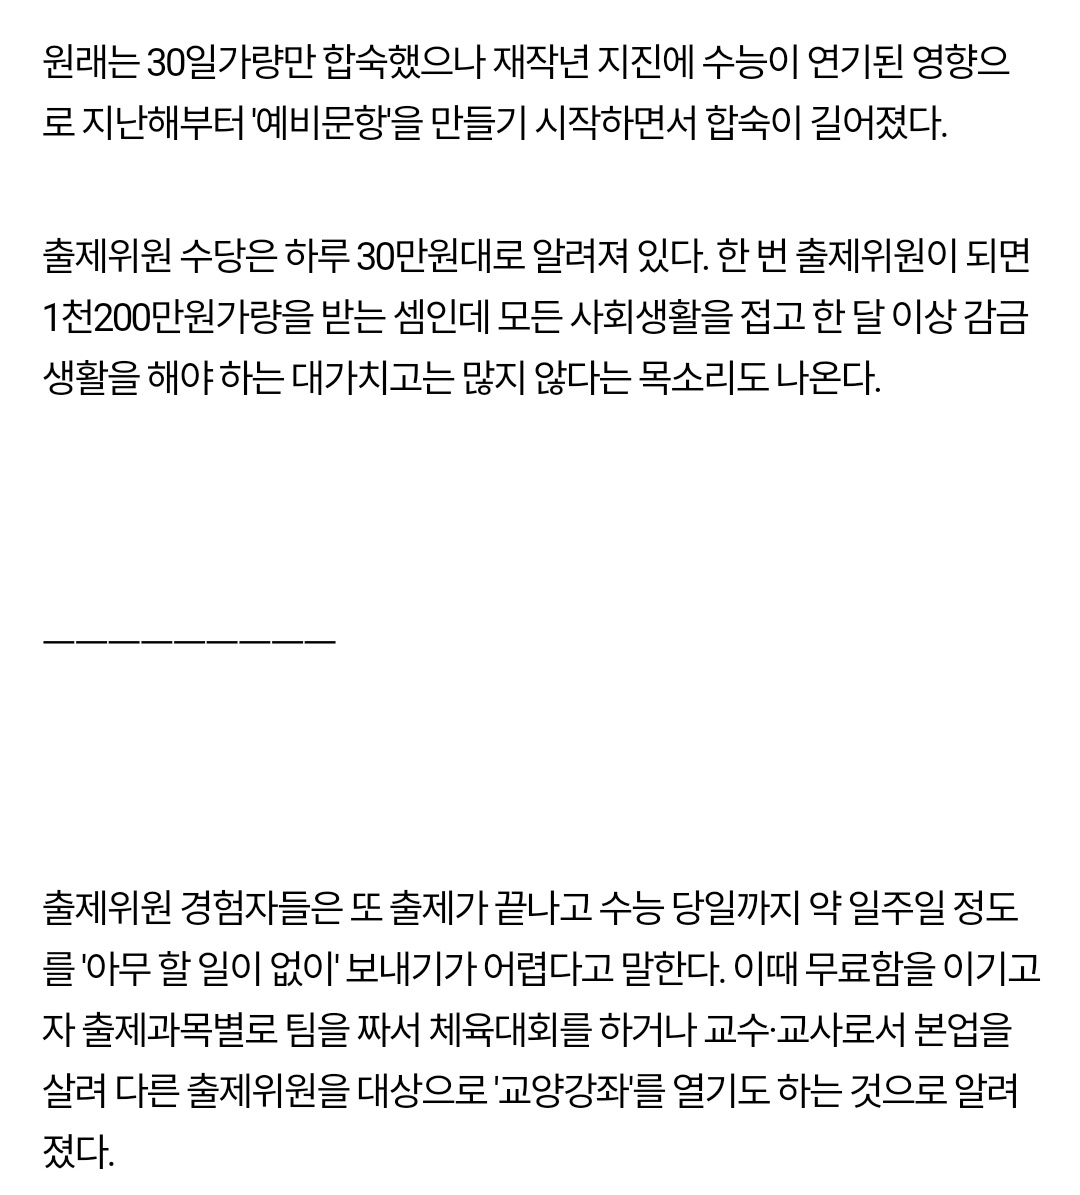 Screenshot_2019-11-14-17-58-25-781_com.android.chrome.png 심심했던 수능출제자... 결국...jpg